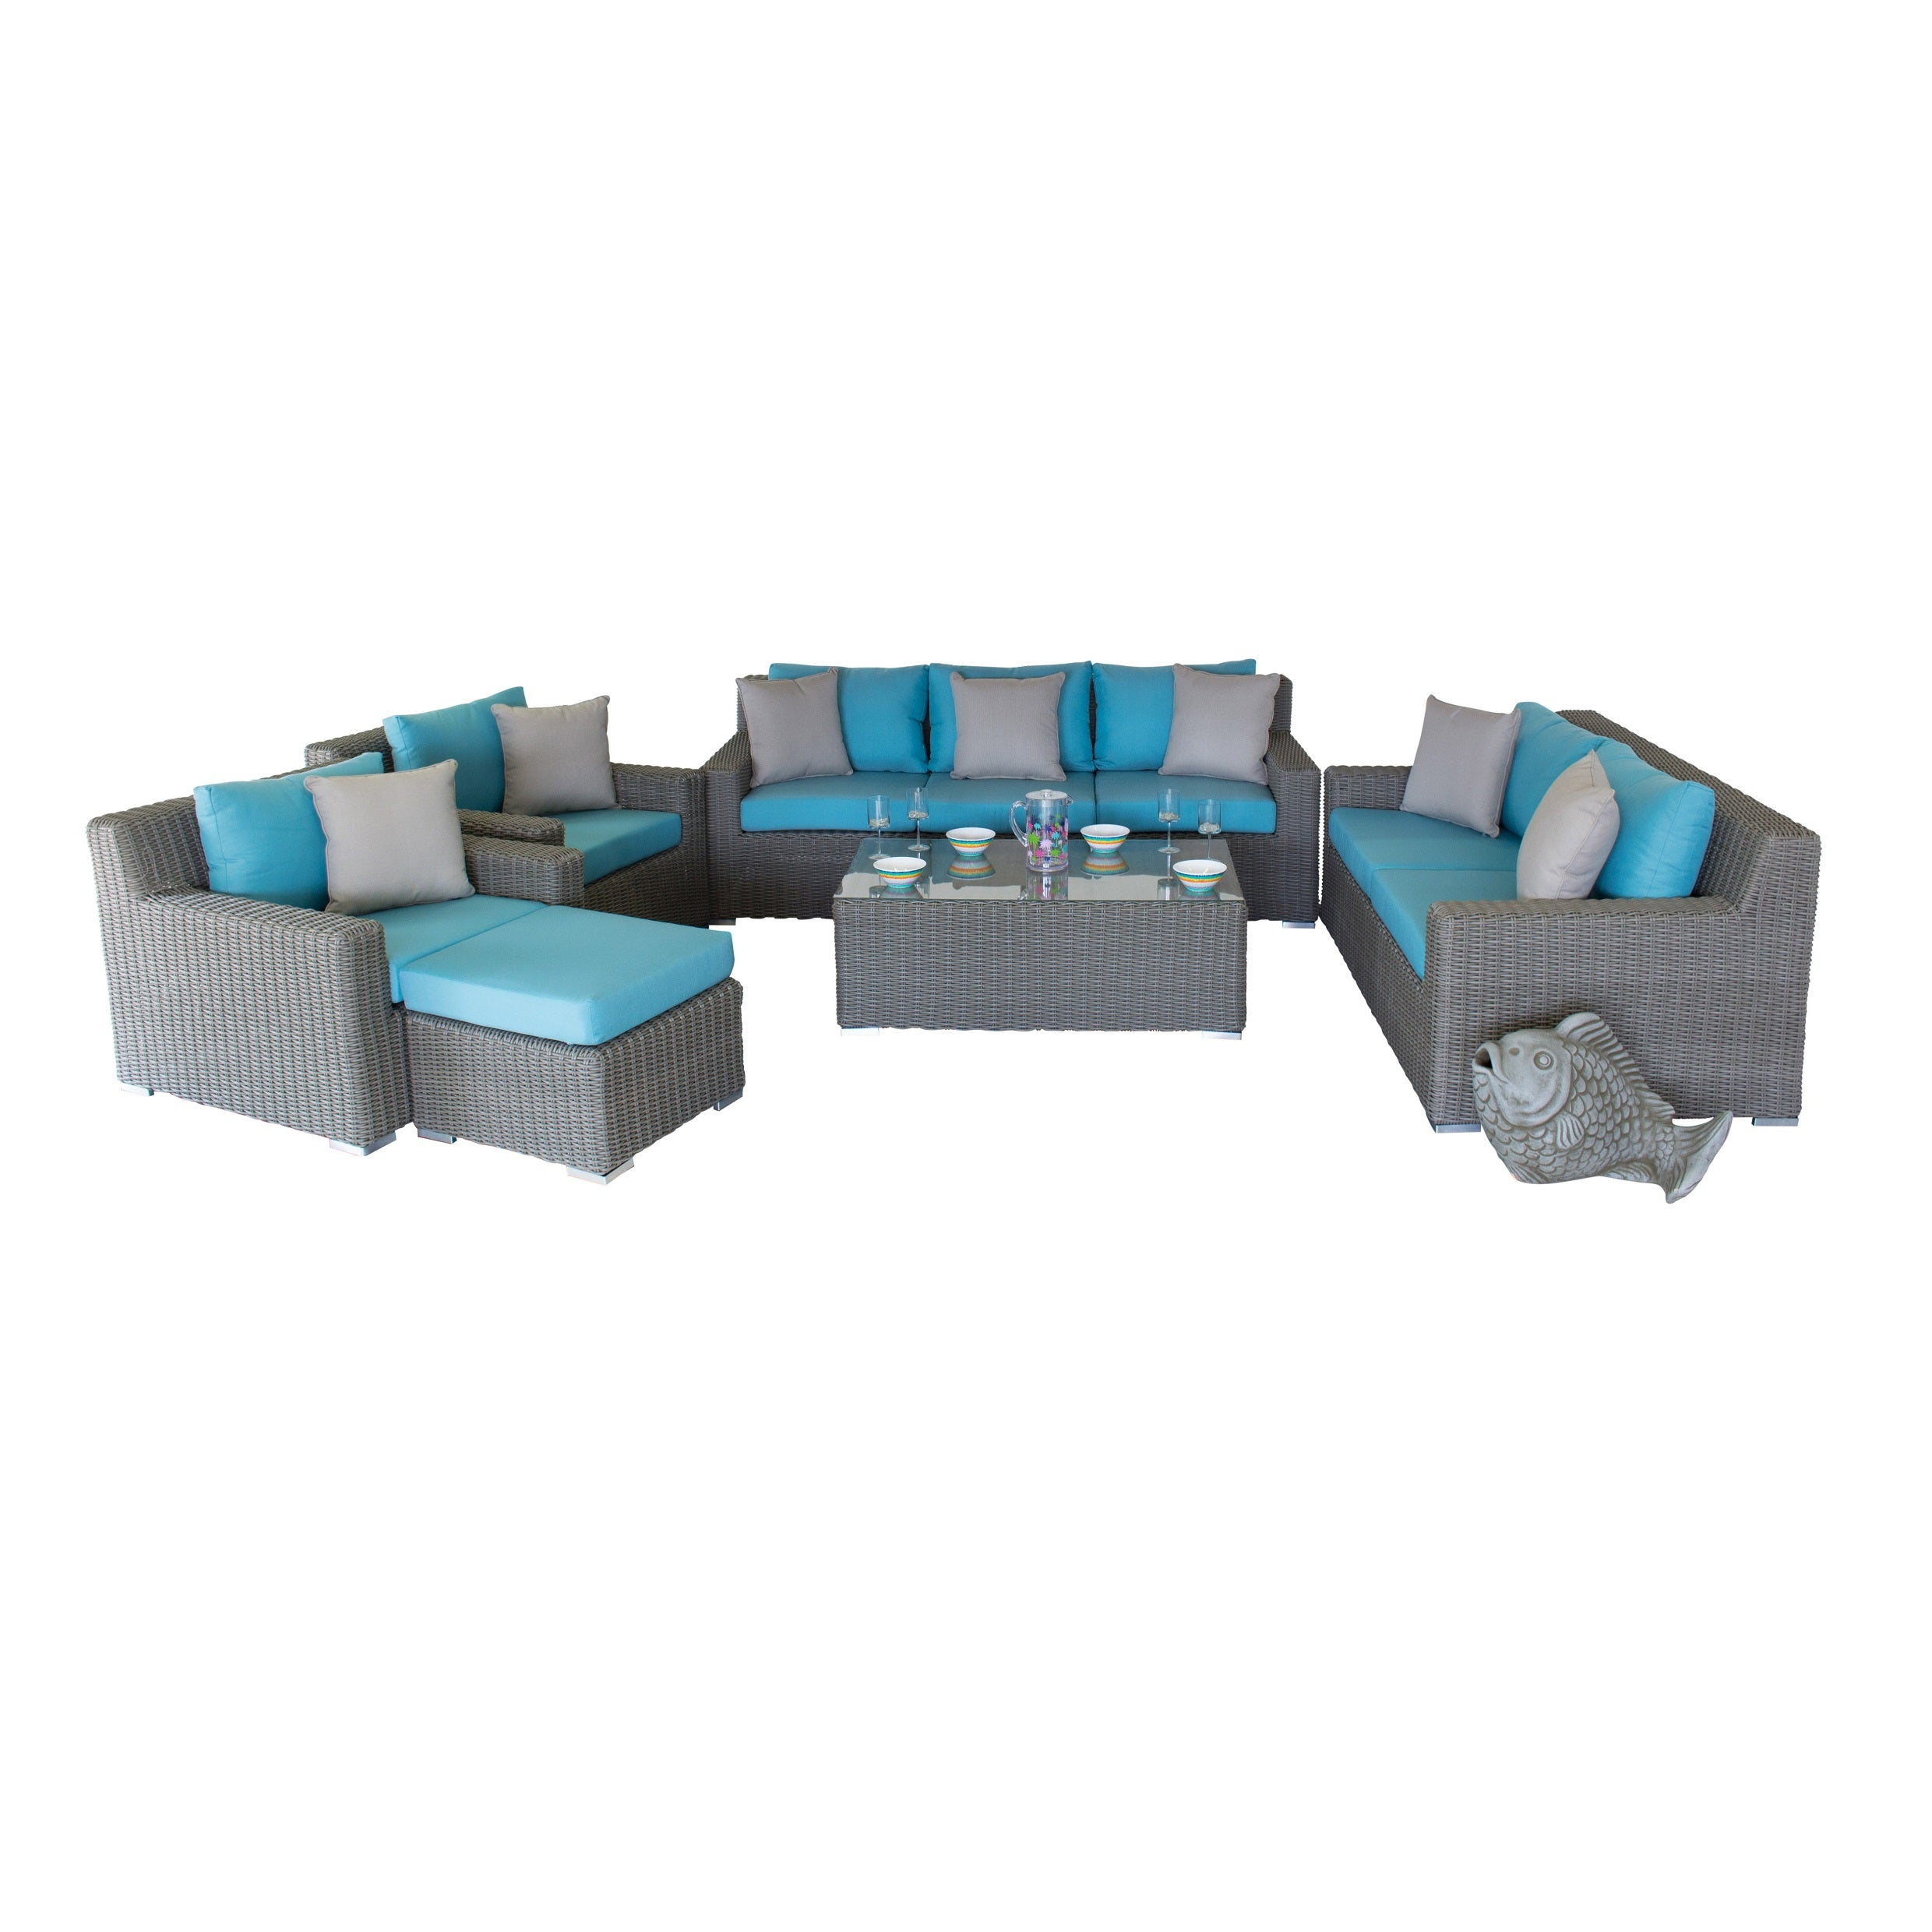 Mighty Gray Collection - 6pc. Sofa Set